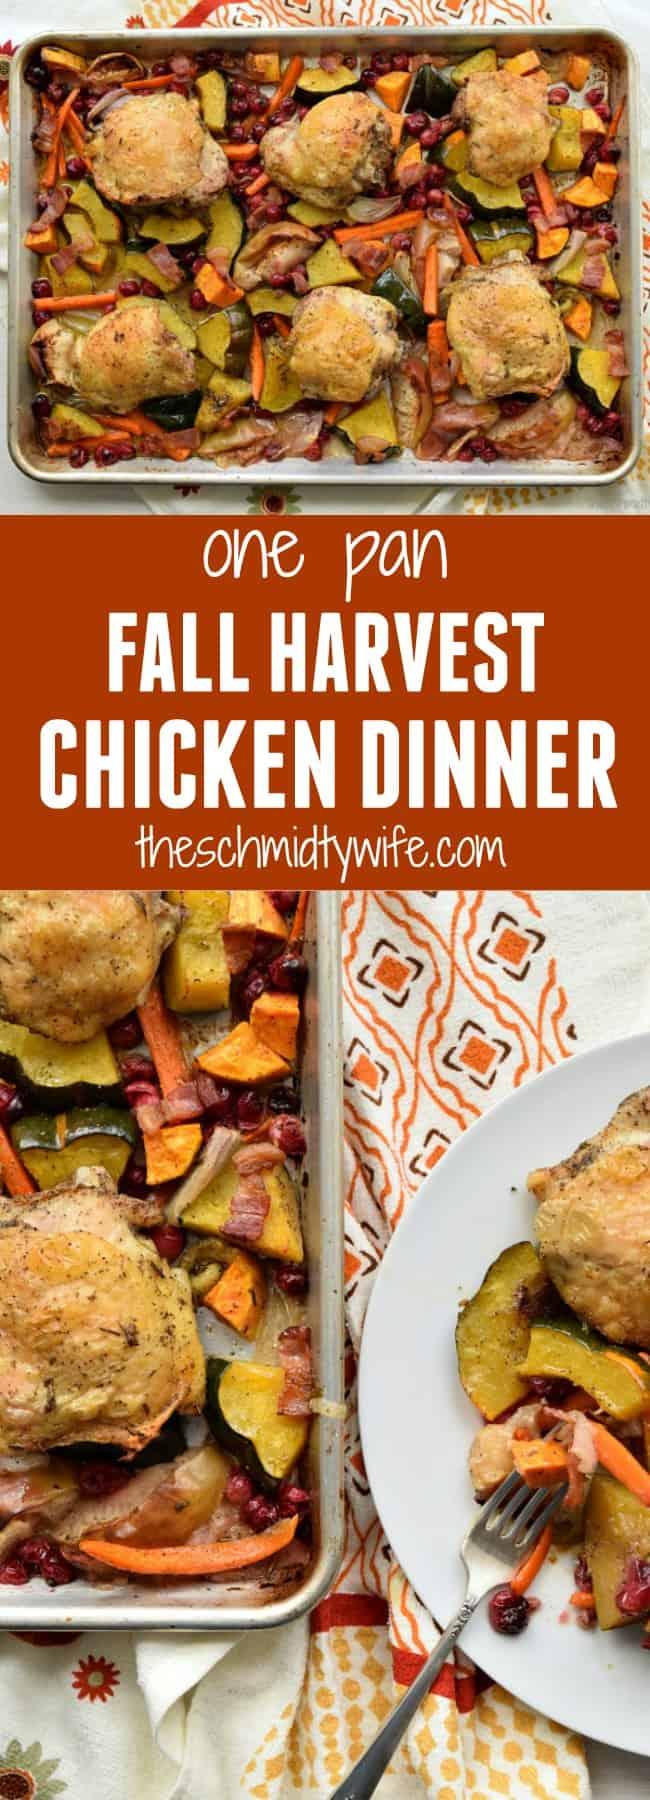 One Pan Fall Harvest Chicken Dinner